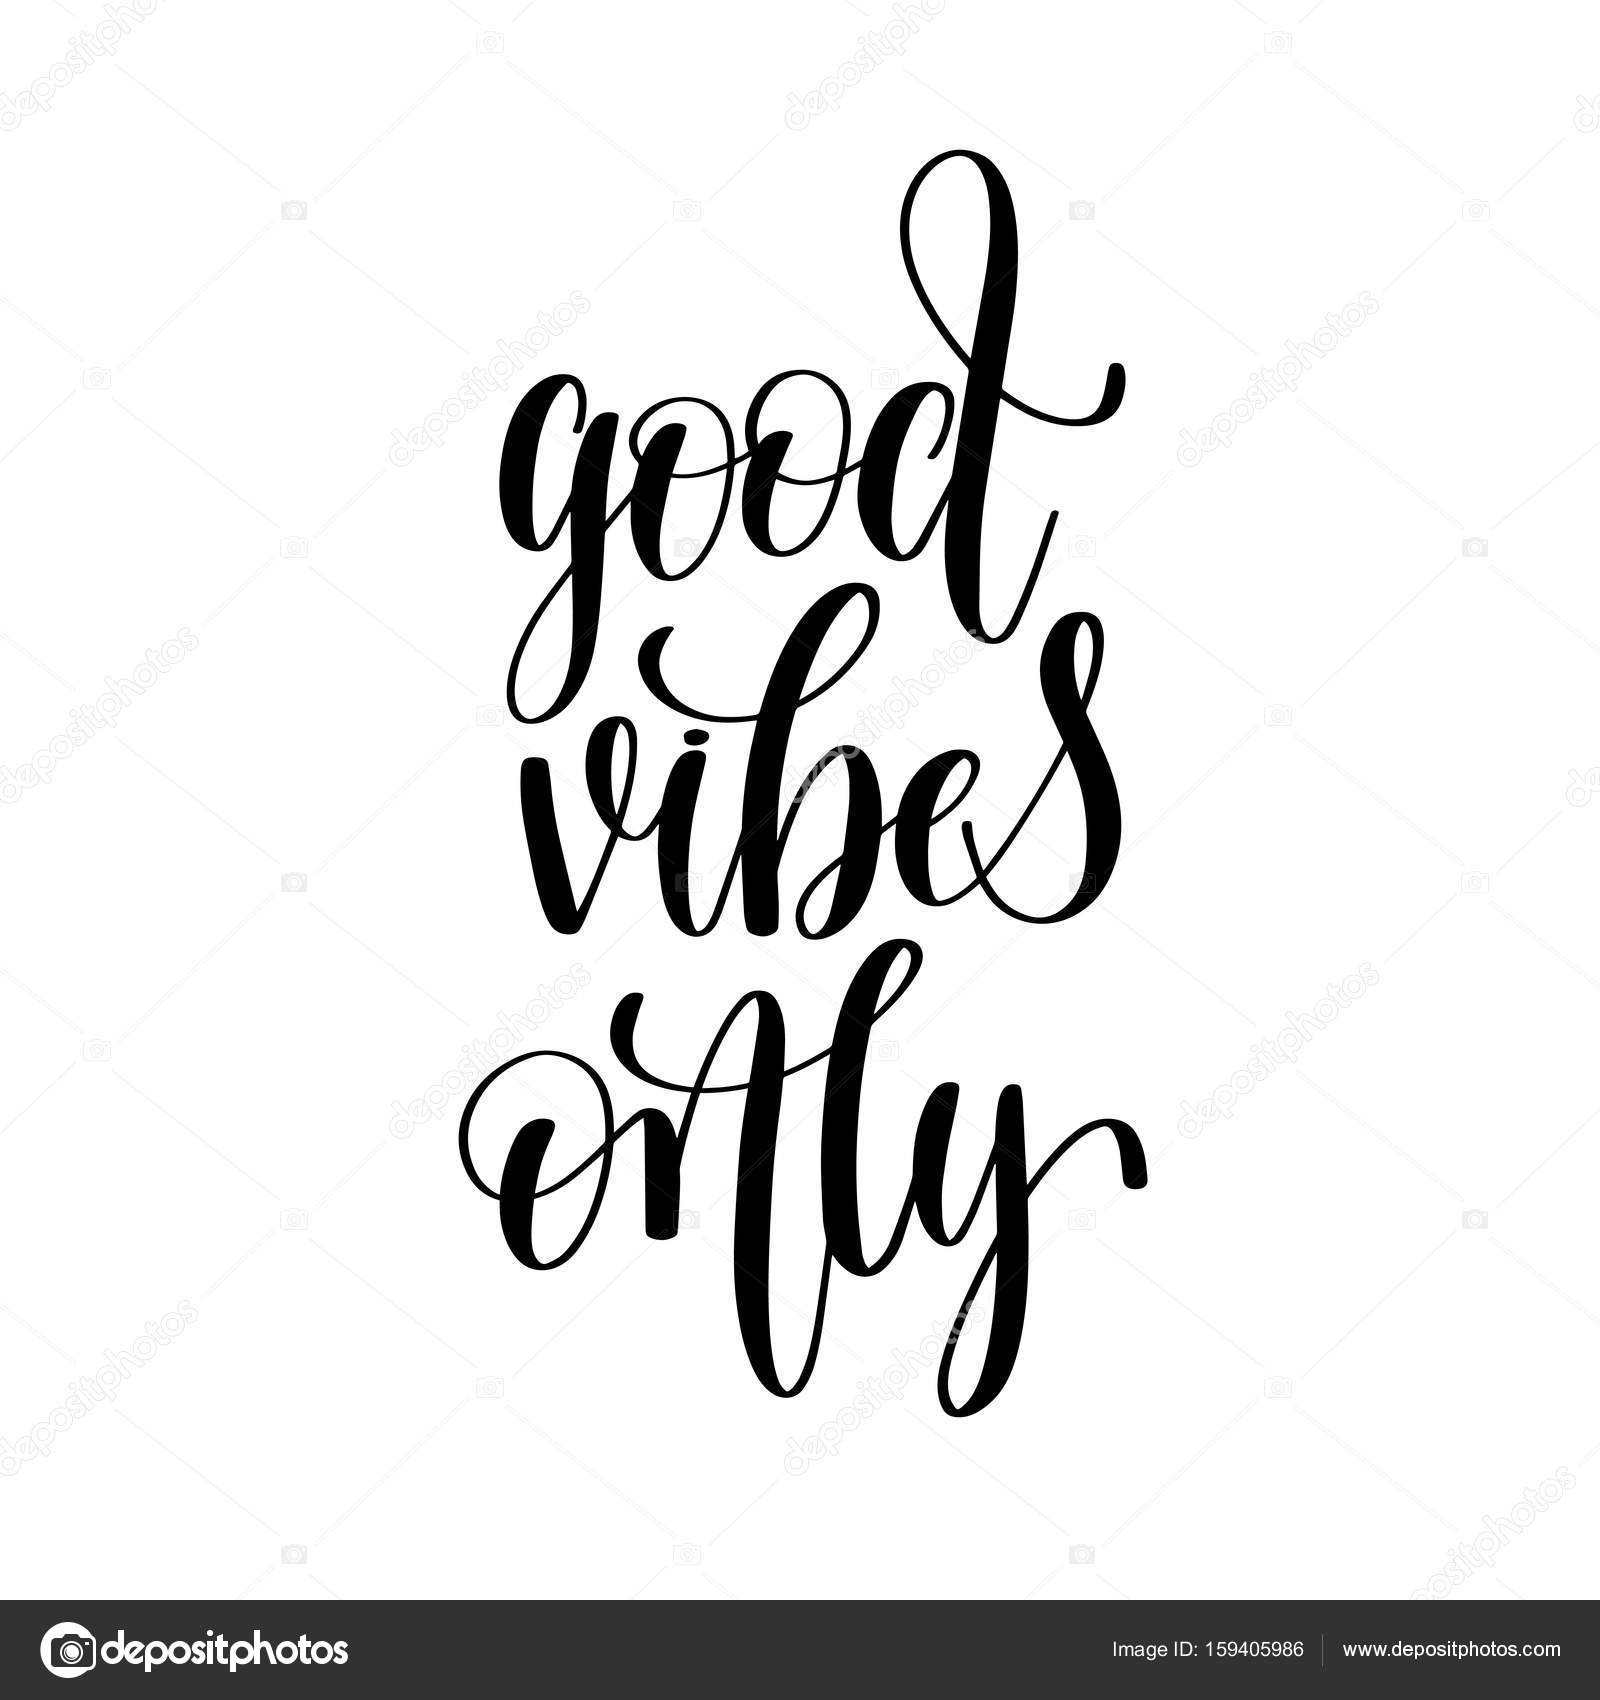 Good vibes only black and white positive quote stock for Black and white only